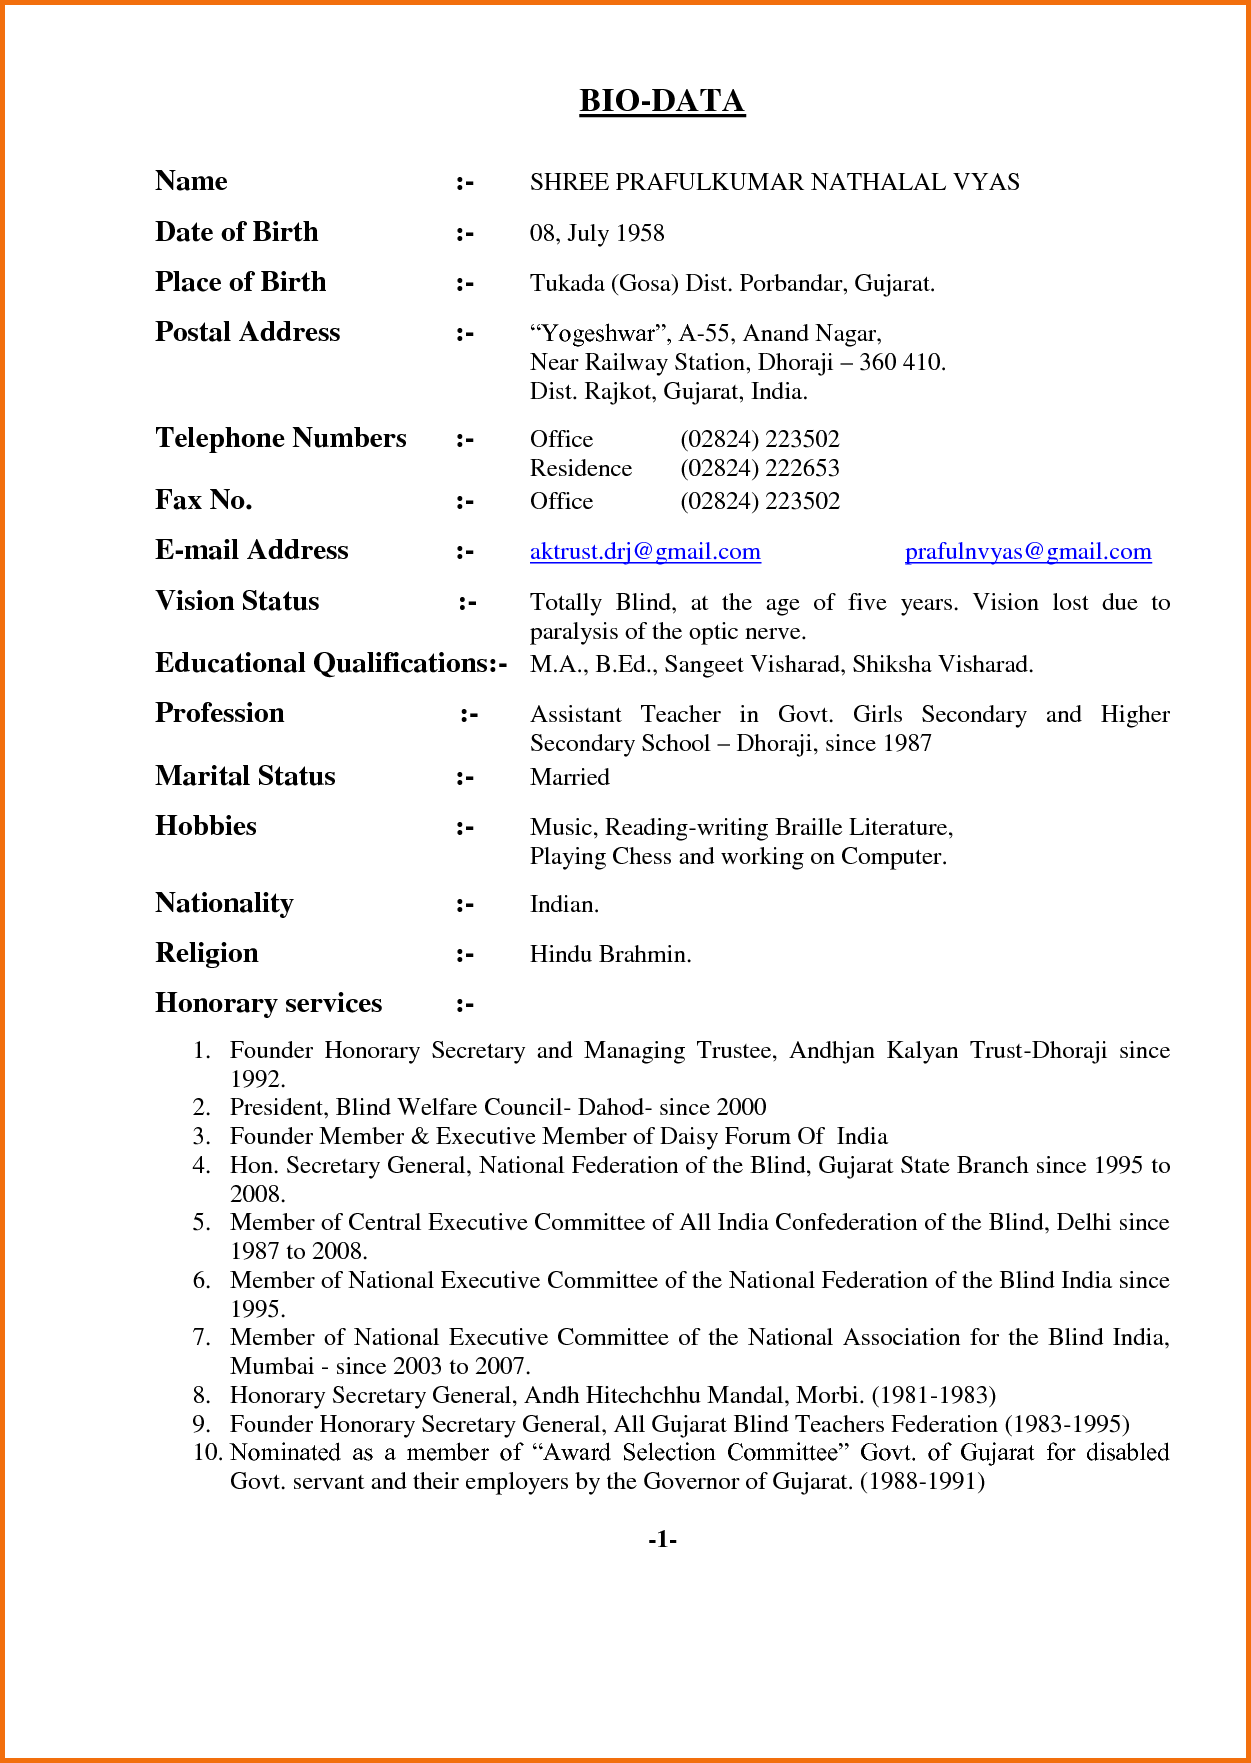 aea0751be5ad392c98a7c1f2a26876b0 Teacher Resume Format In Word India on margins in word, references in word, home in word, restaurant in word, presentation in word, cover letter examples in word, layout in word, checklist in word, job in word, application form in word, curriculum vitae in word, cv examples in word, resume builder in word, chronological resume in word, building a resume in word, title in word, resignation letter in word,